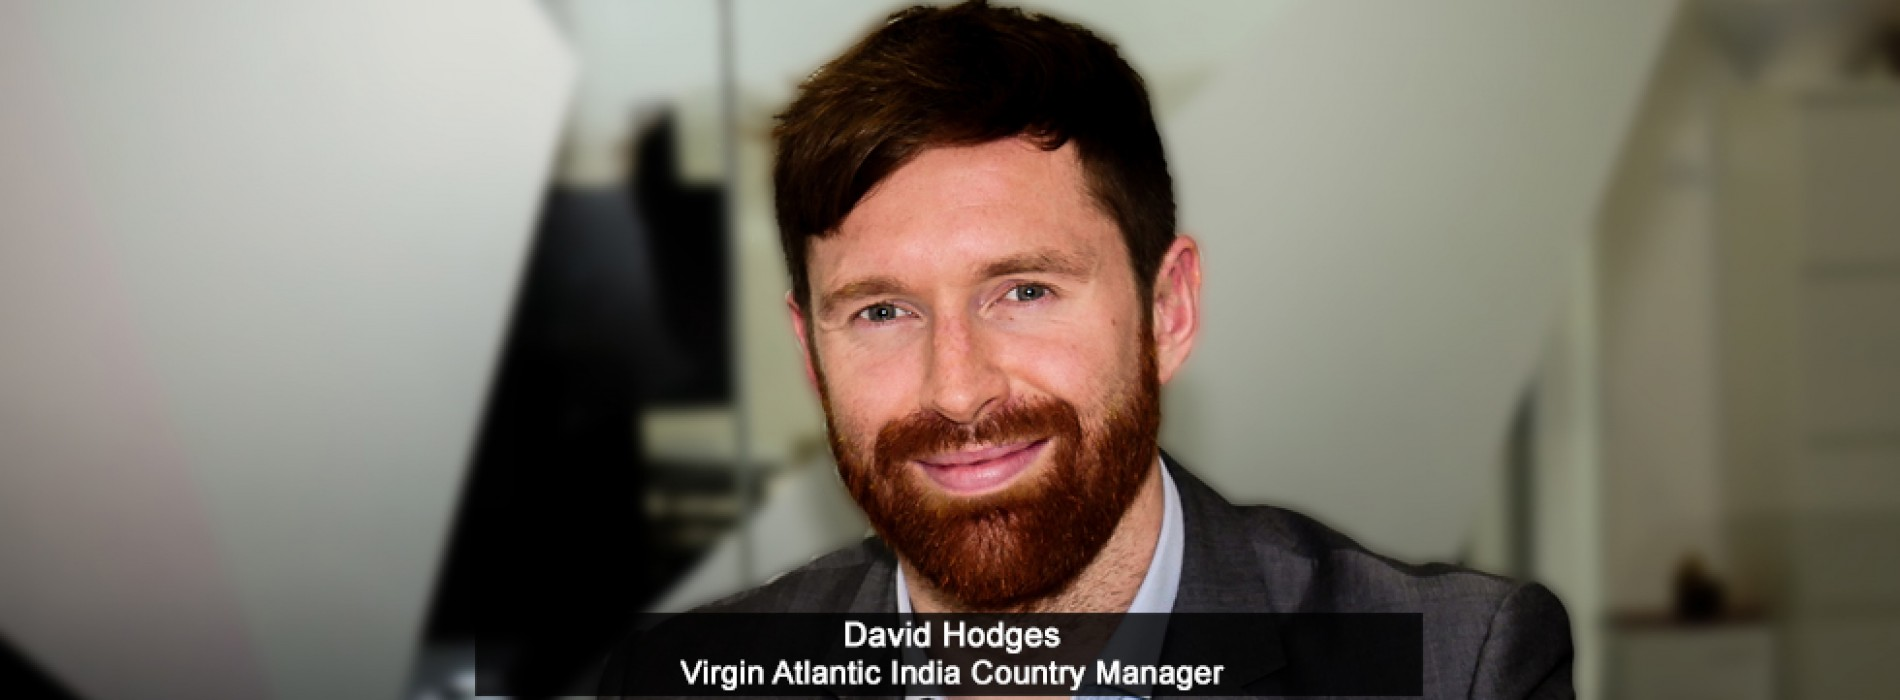 Virgin Atlantic appoints David Hodges as new Country Manager for India